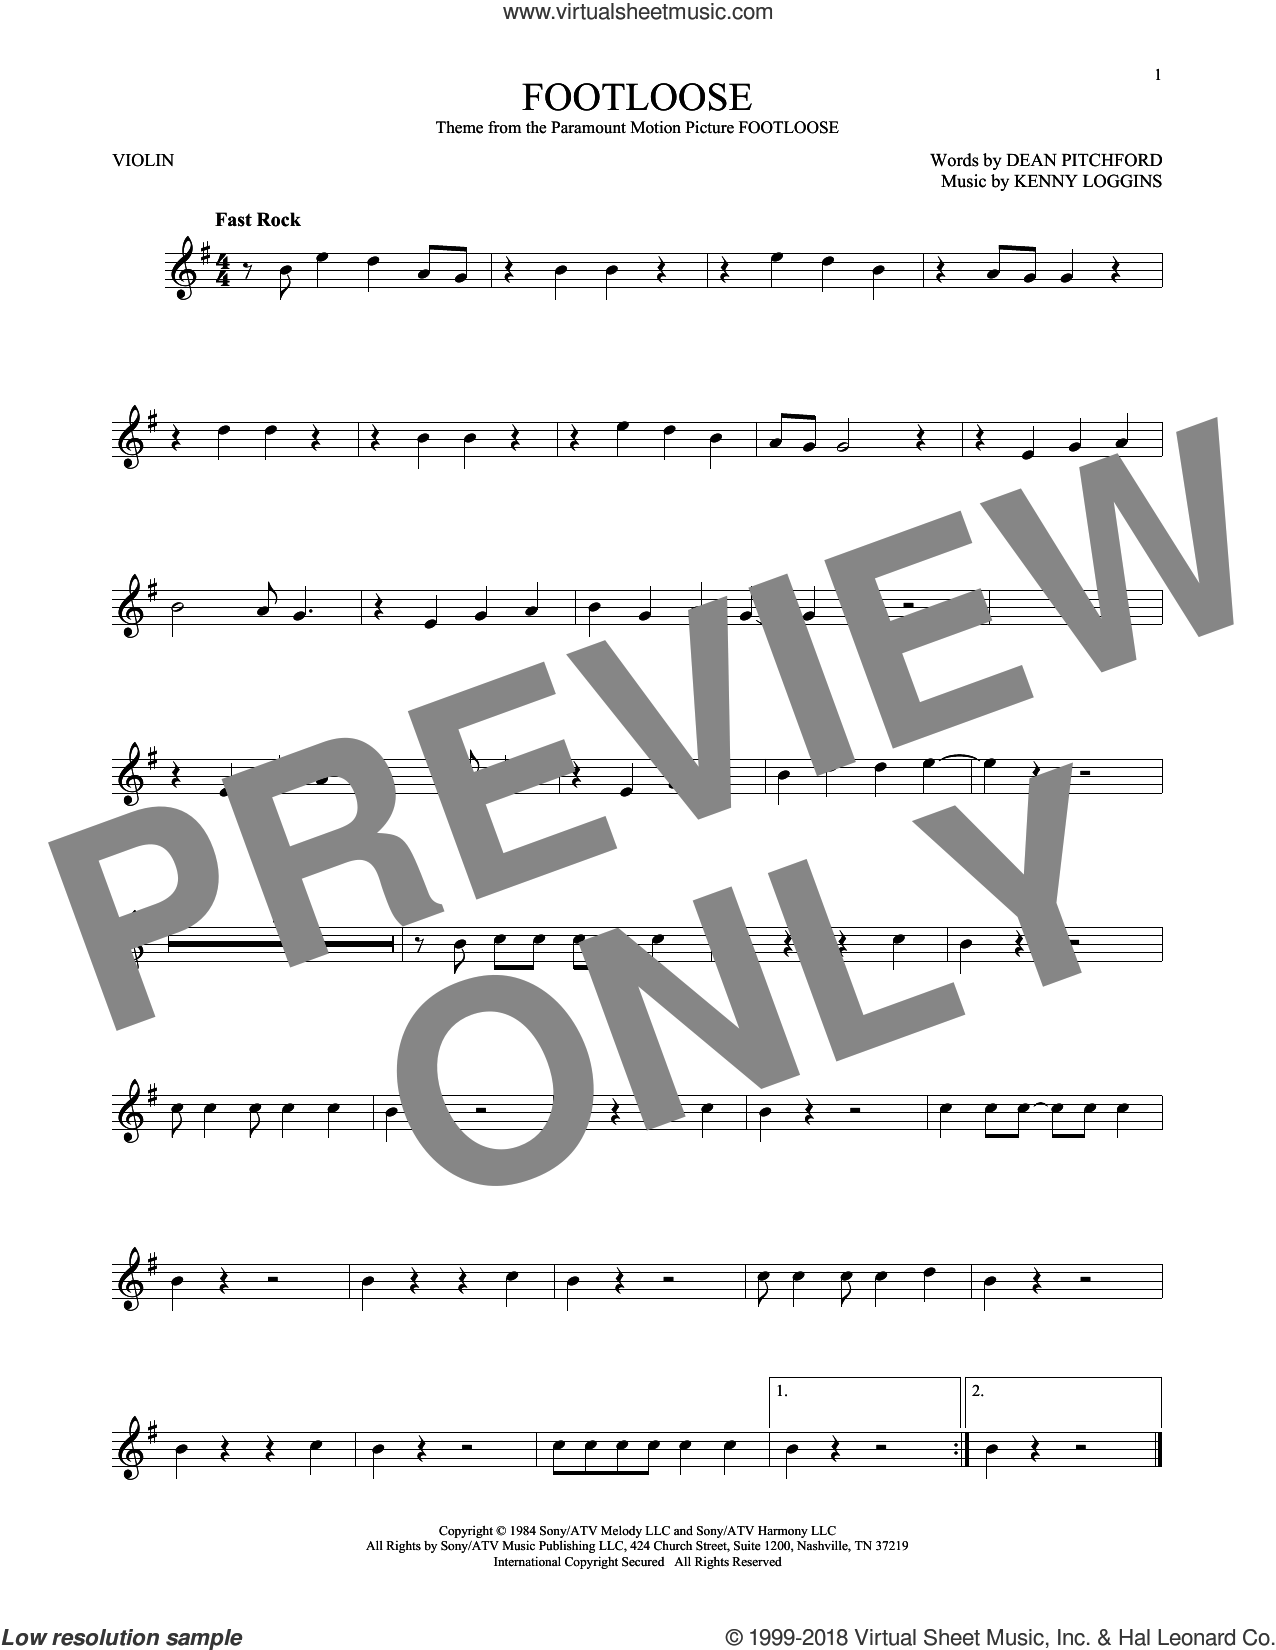 Footloose sheet music for violin solo by Kenny Loggins, Blake Shelton and Dean Pitchford, intermediate skill level